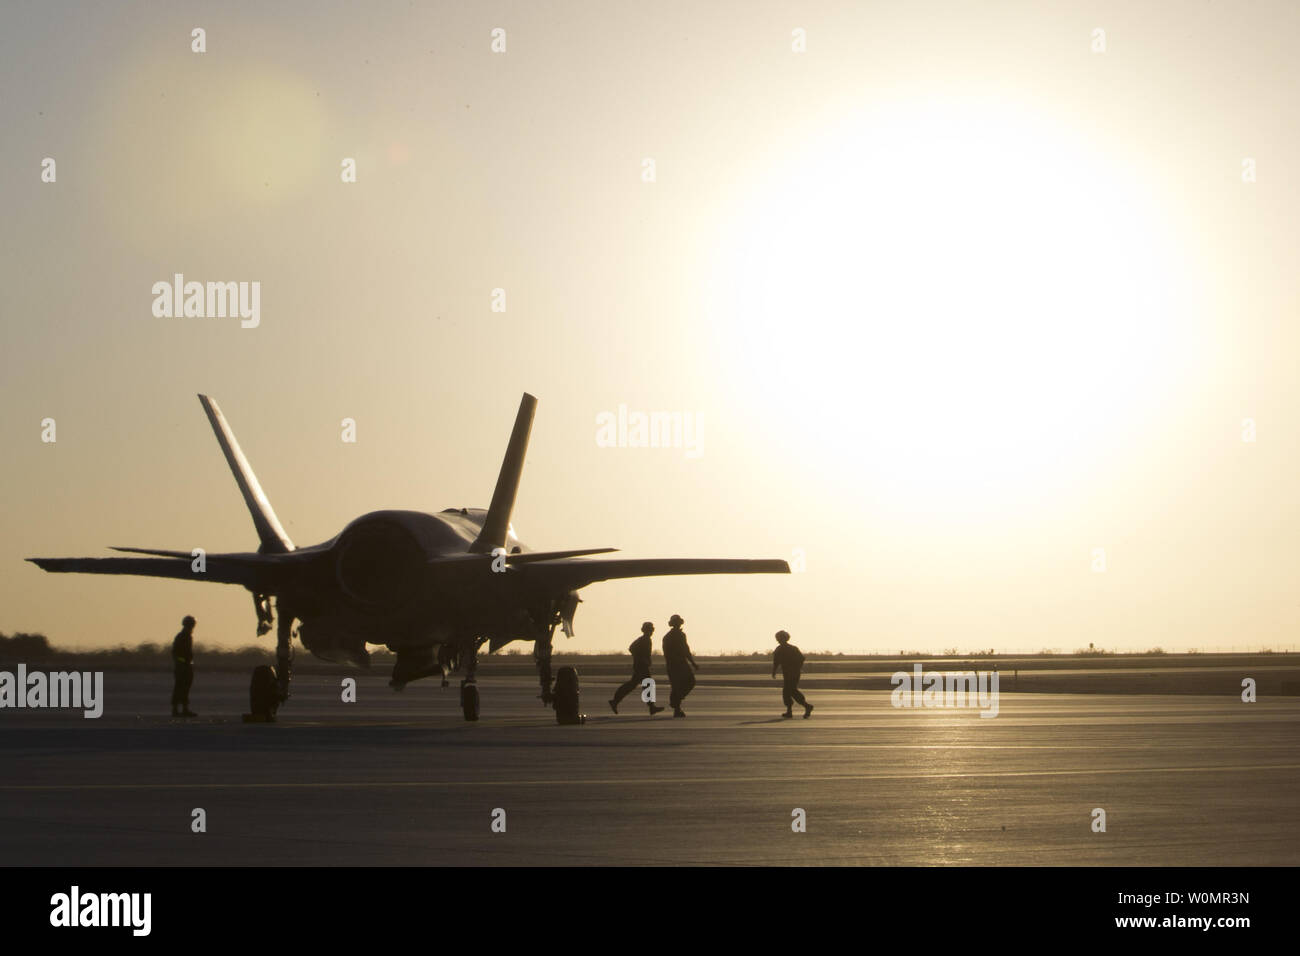 U.S. Marines with Marine Fighter Attack Squadron 121 (VMFA-121), 3rd Marine Aircraft Wing, conduct the first hot load on a F-35B Lightning II in support of Weapons and Tactics Instructors (WTI) 1-17 at Marine Corps Air Station Yuma, Ariz., September 22, 2016. Photo by Aaron James Vinculado/U.S. Marine Corps/UPI Stock Photo